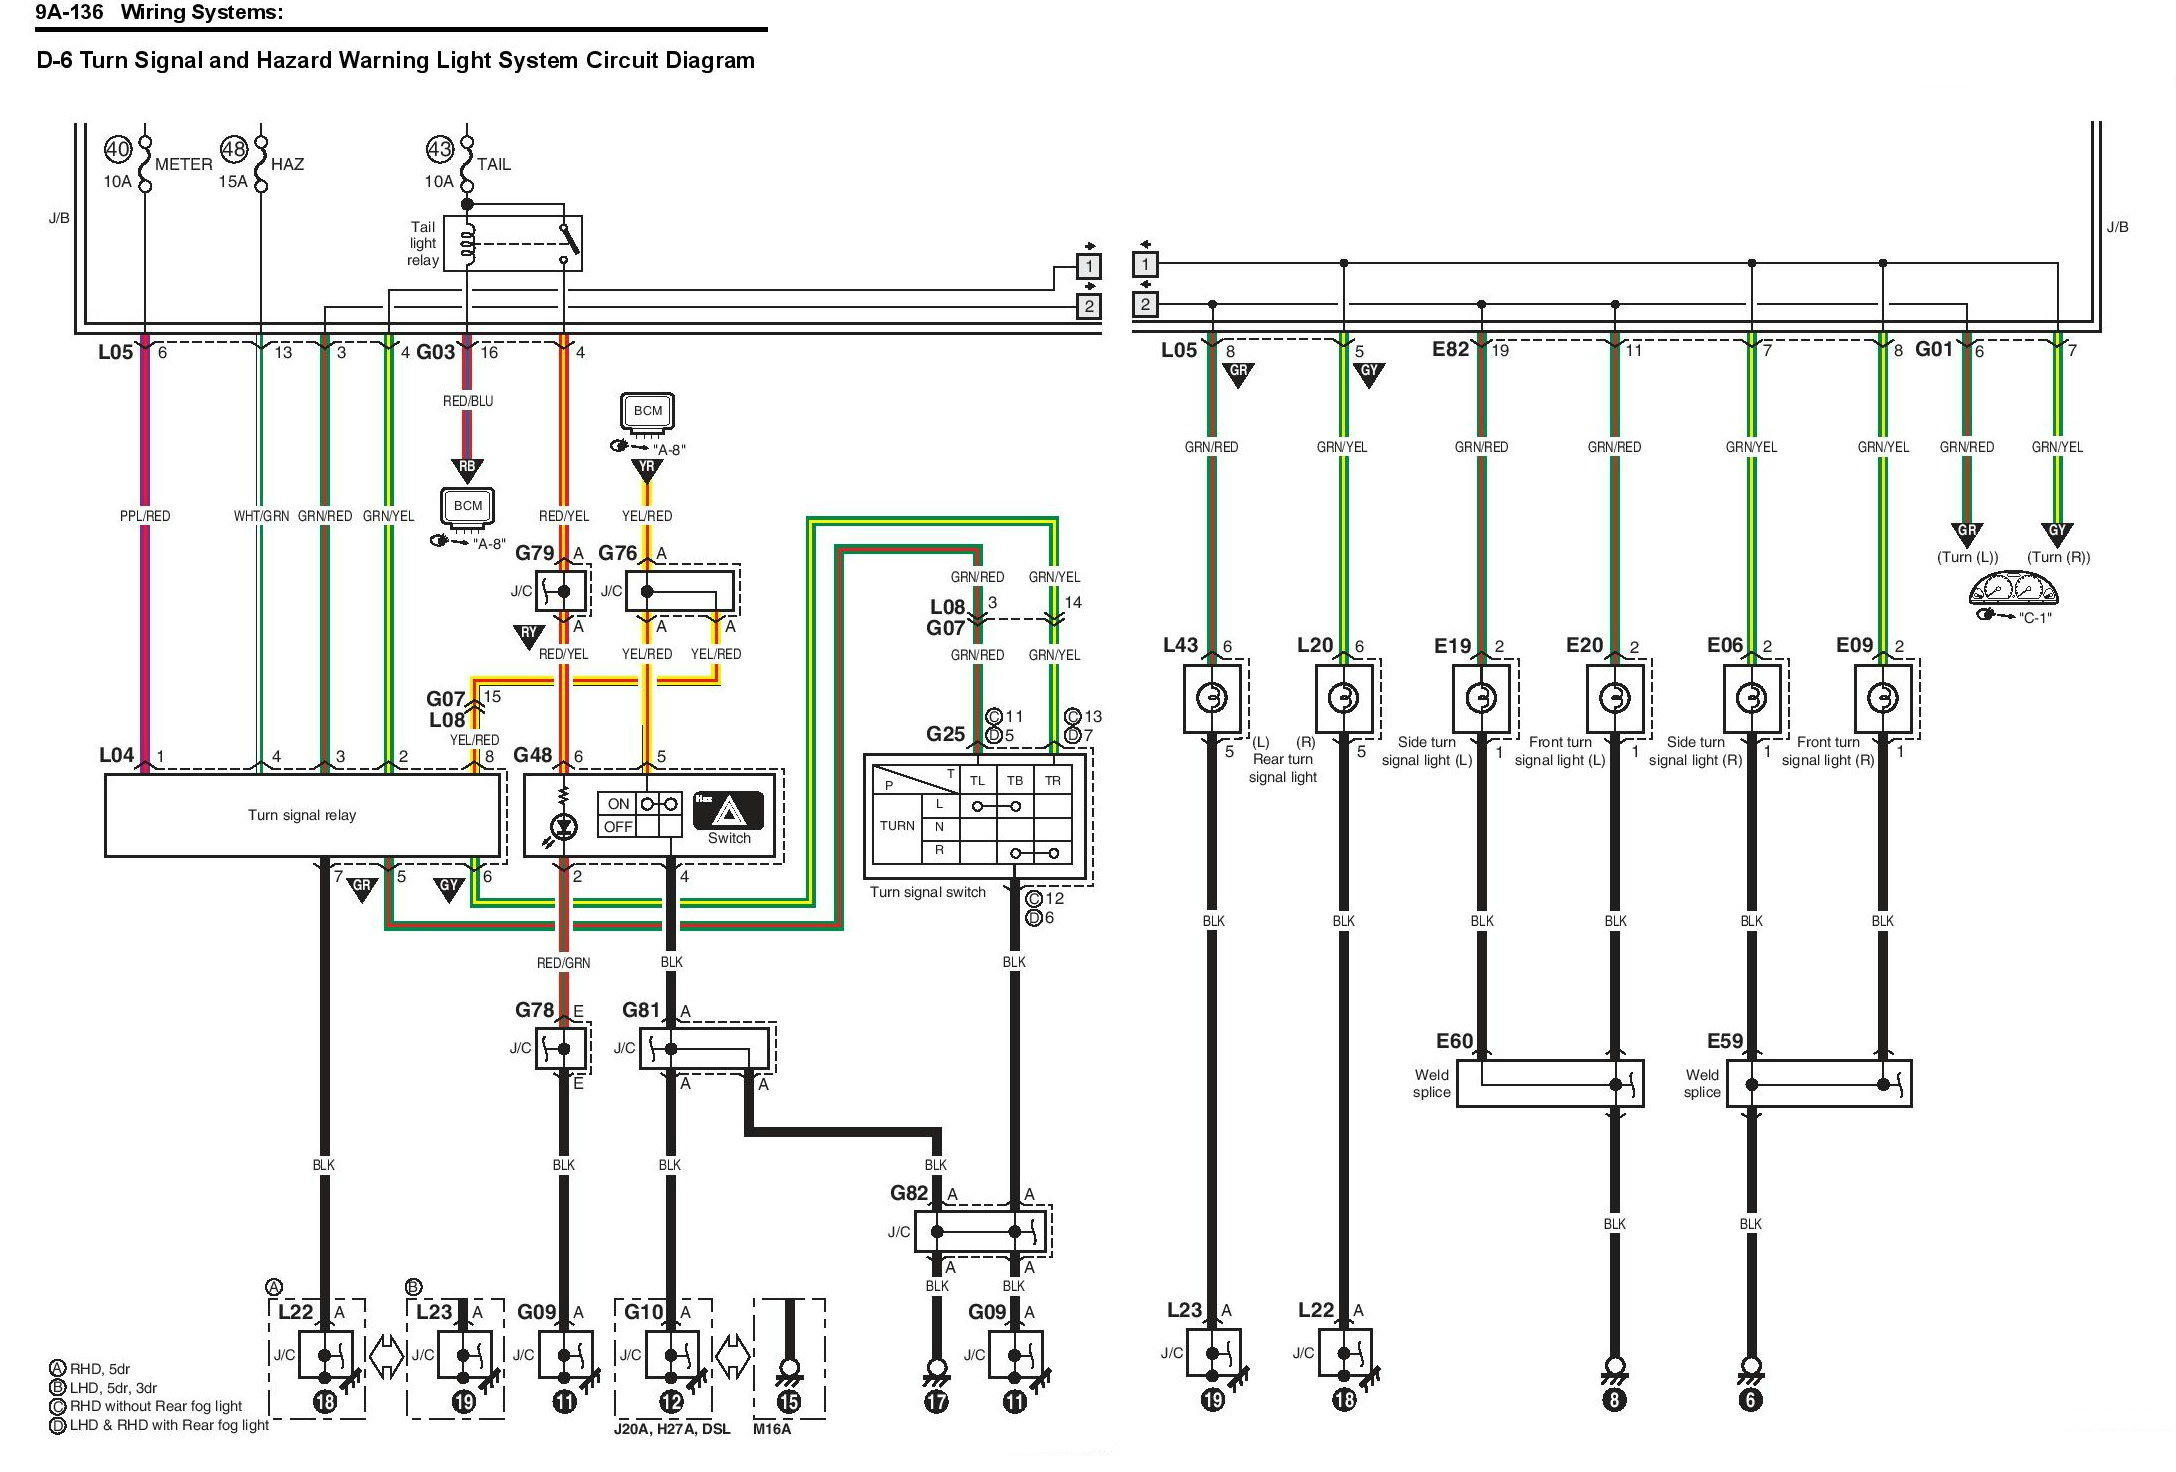 ha4kp0t27r79tiqzg suzuki sx4 audio wiring diagram suzuki wiring diagram instructions suzuki sx4 radio wiring harness at bakdesigns.co